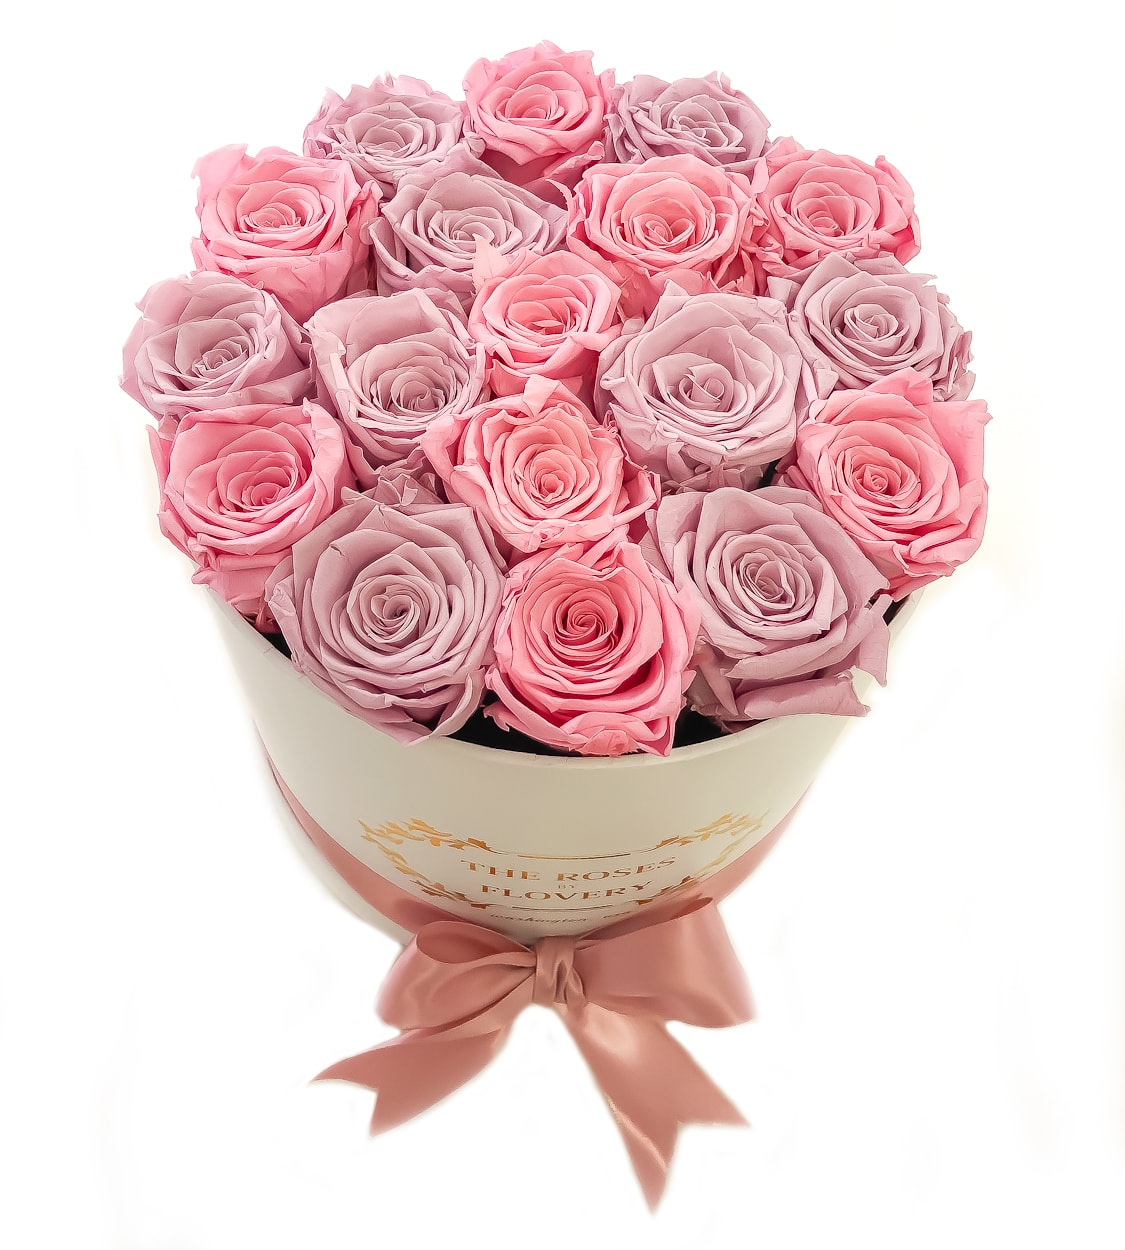 What are real touch artificial flowers flovery keely in toronto canada purchased a izmirmasajfo